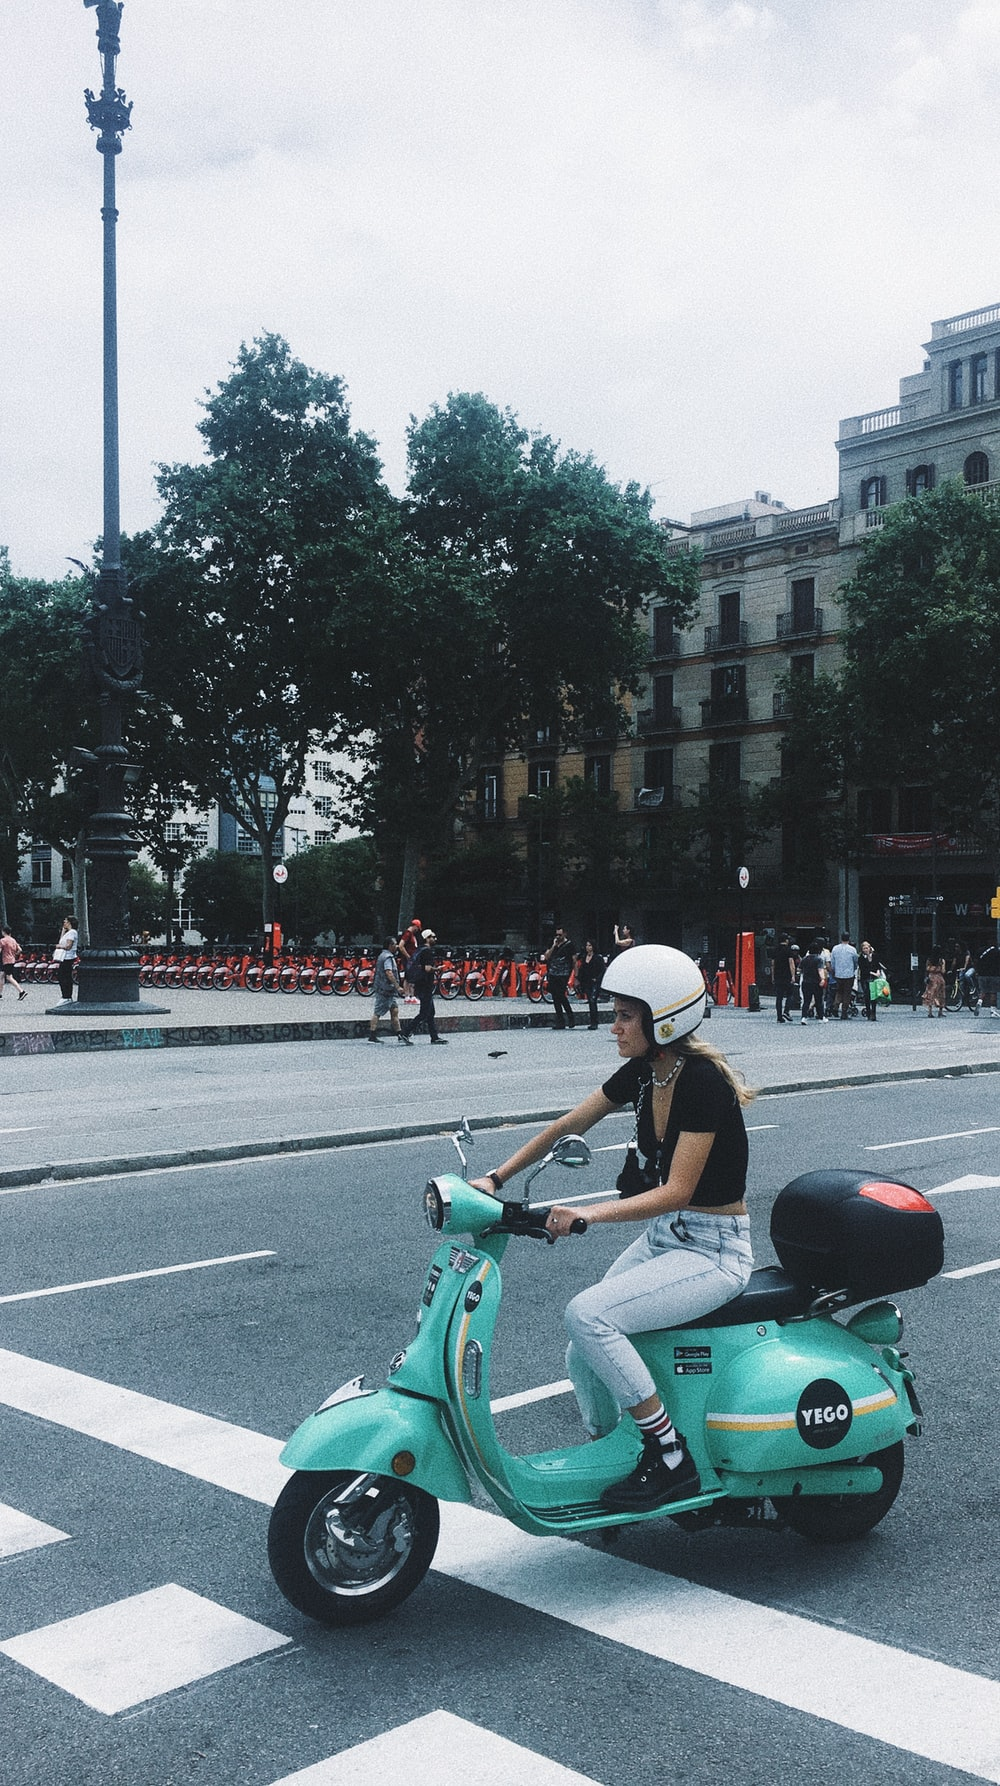 woman riding green motor scooter near road viewing people and buildings under white skies